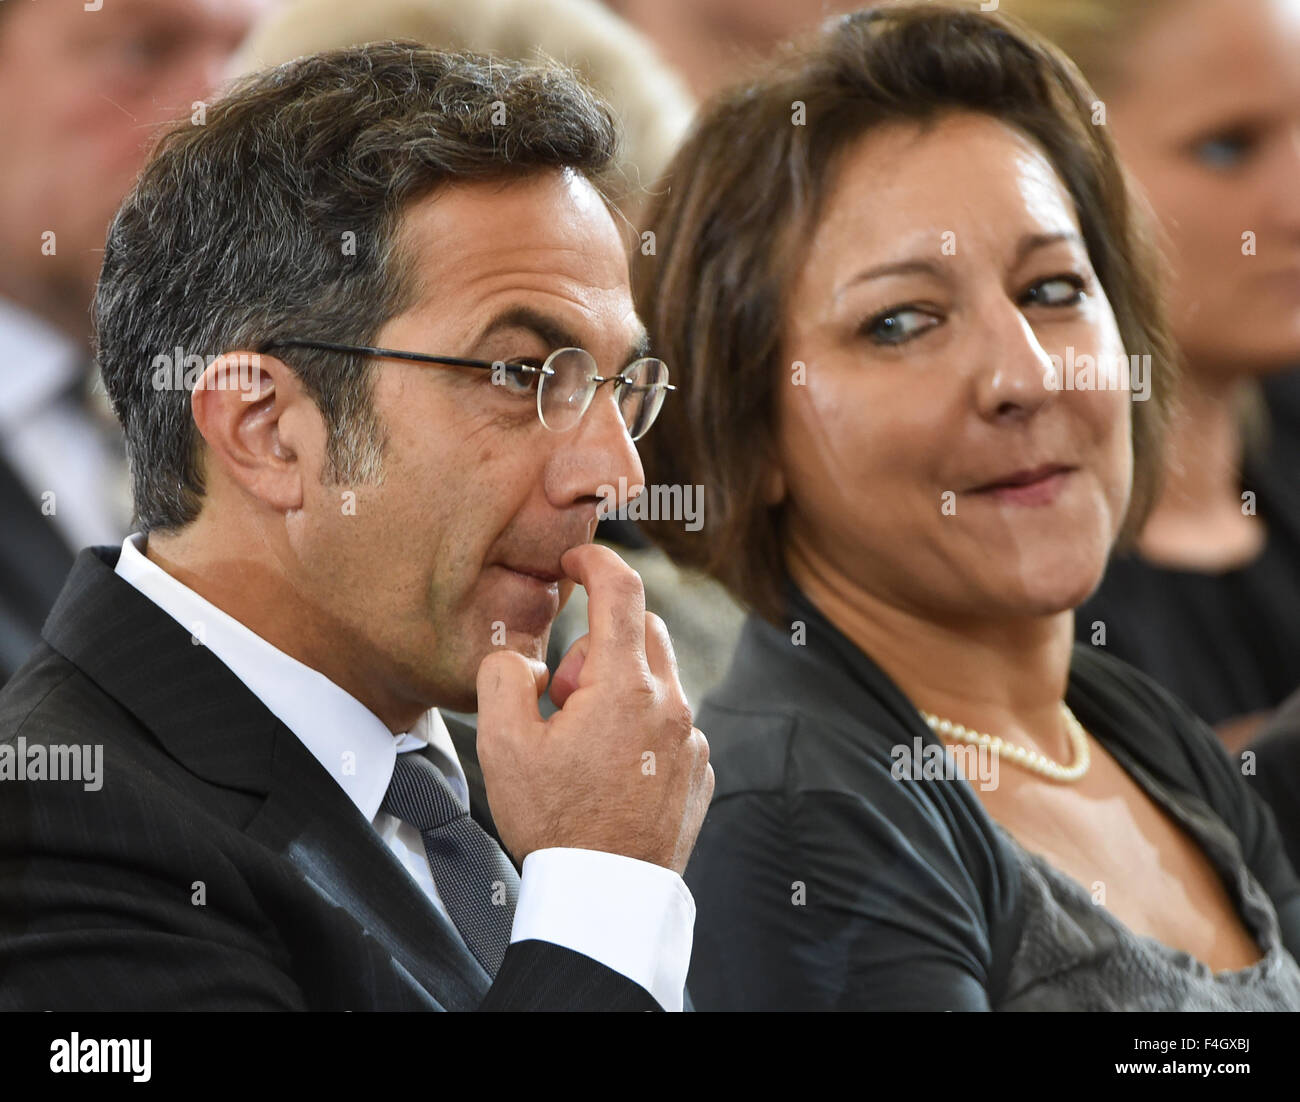 German Iranian Author Navid Kermani And His Wife Katajun Kermani At The Award Ceremony For The Peace Prize Of The German Book Trade In The Paulskirche Church In Frankfurt Am Main Germany 18